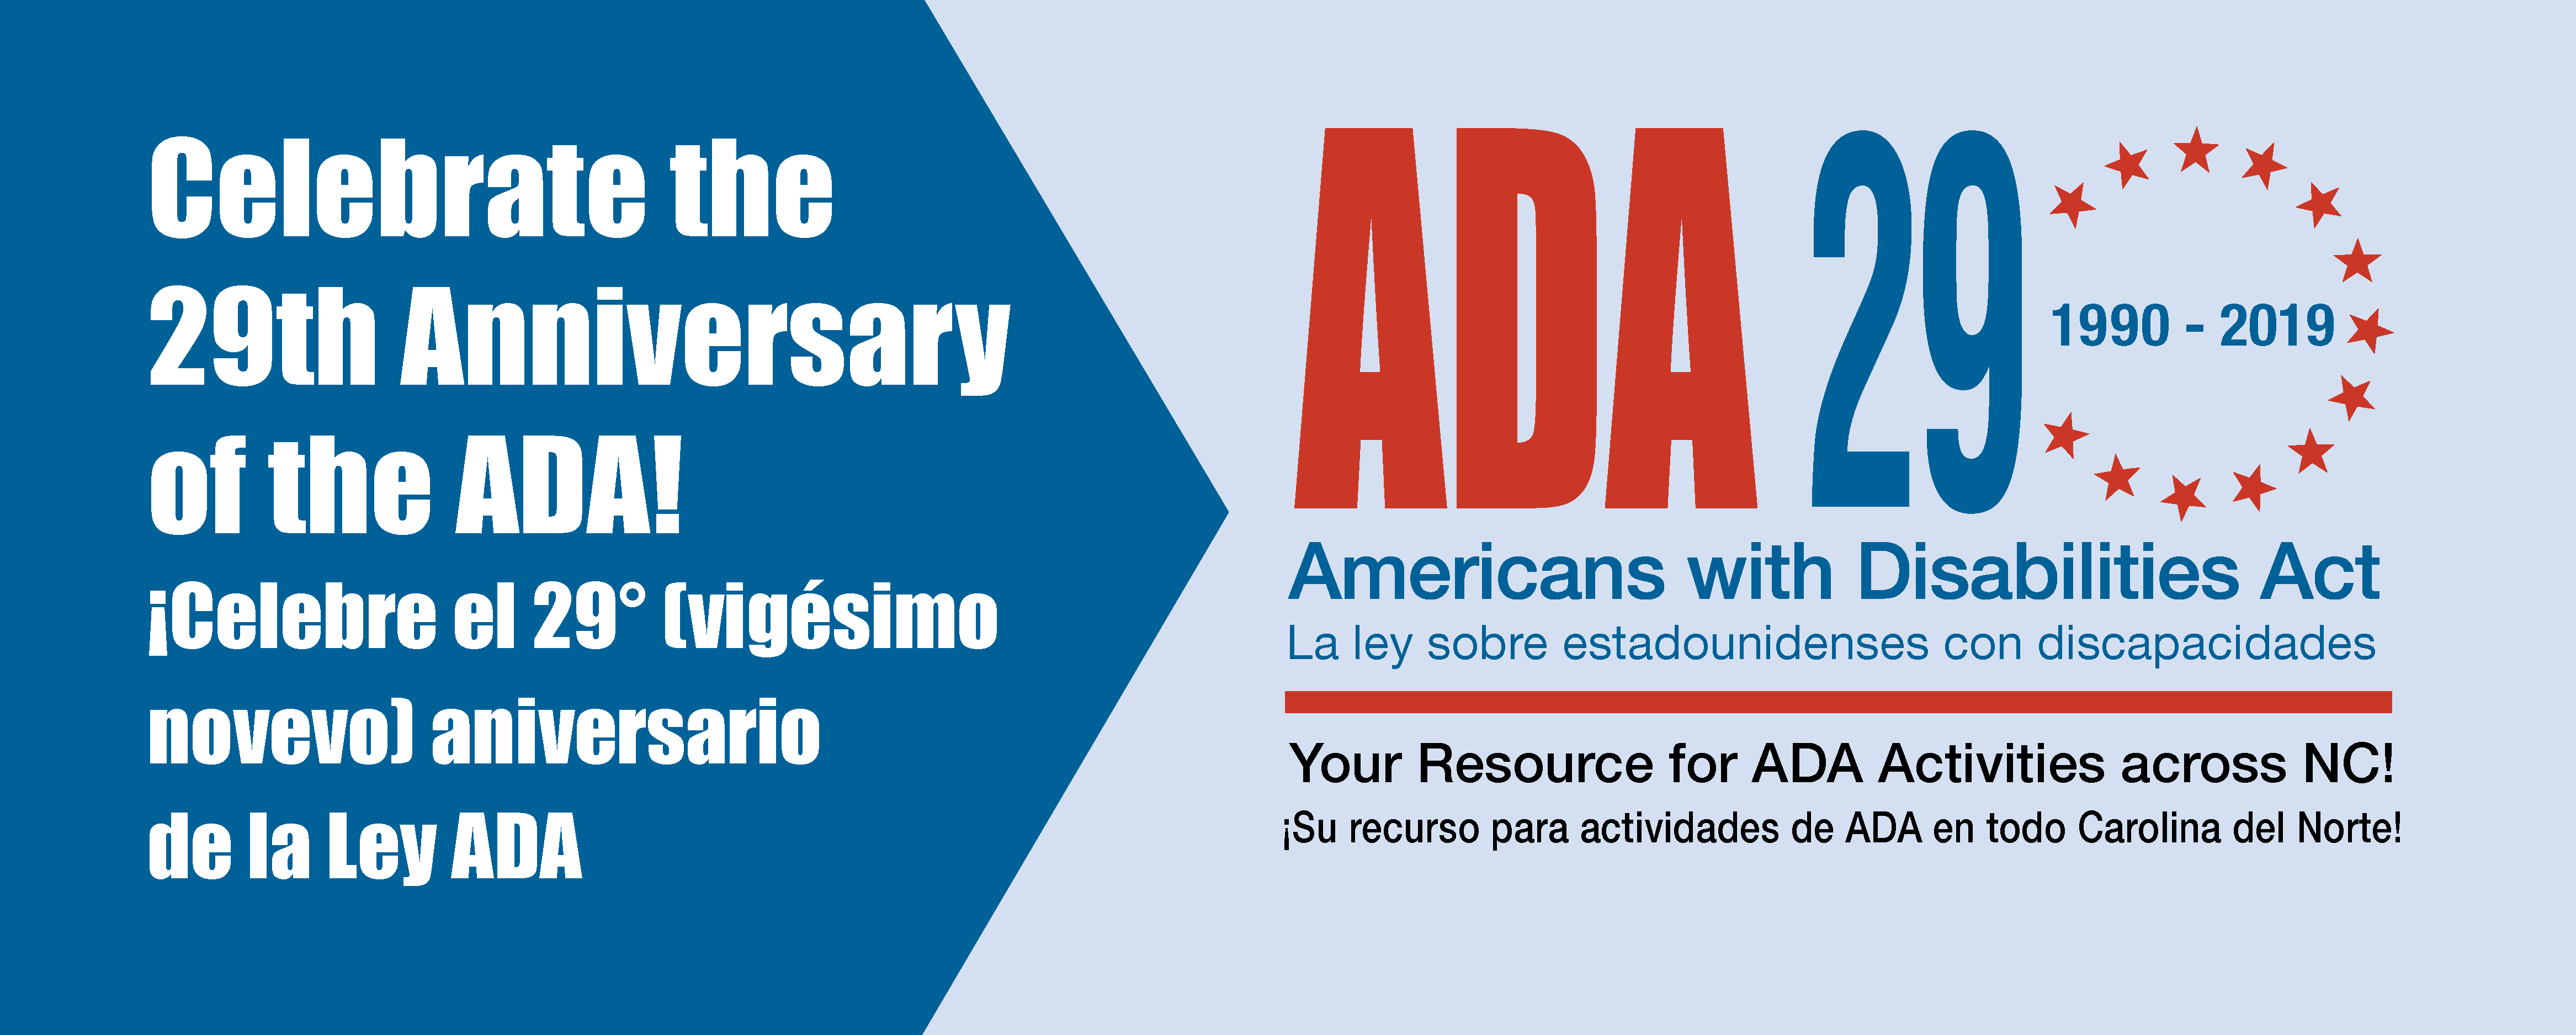 Celebrate the 29th Anniversary of the ADA - ¡Celebre el 29° (vigésimo novevo) aniversario de la Ley ADA